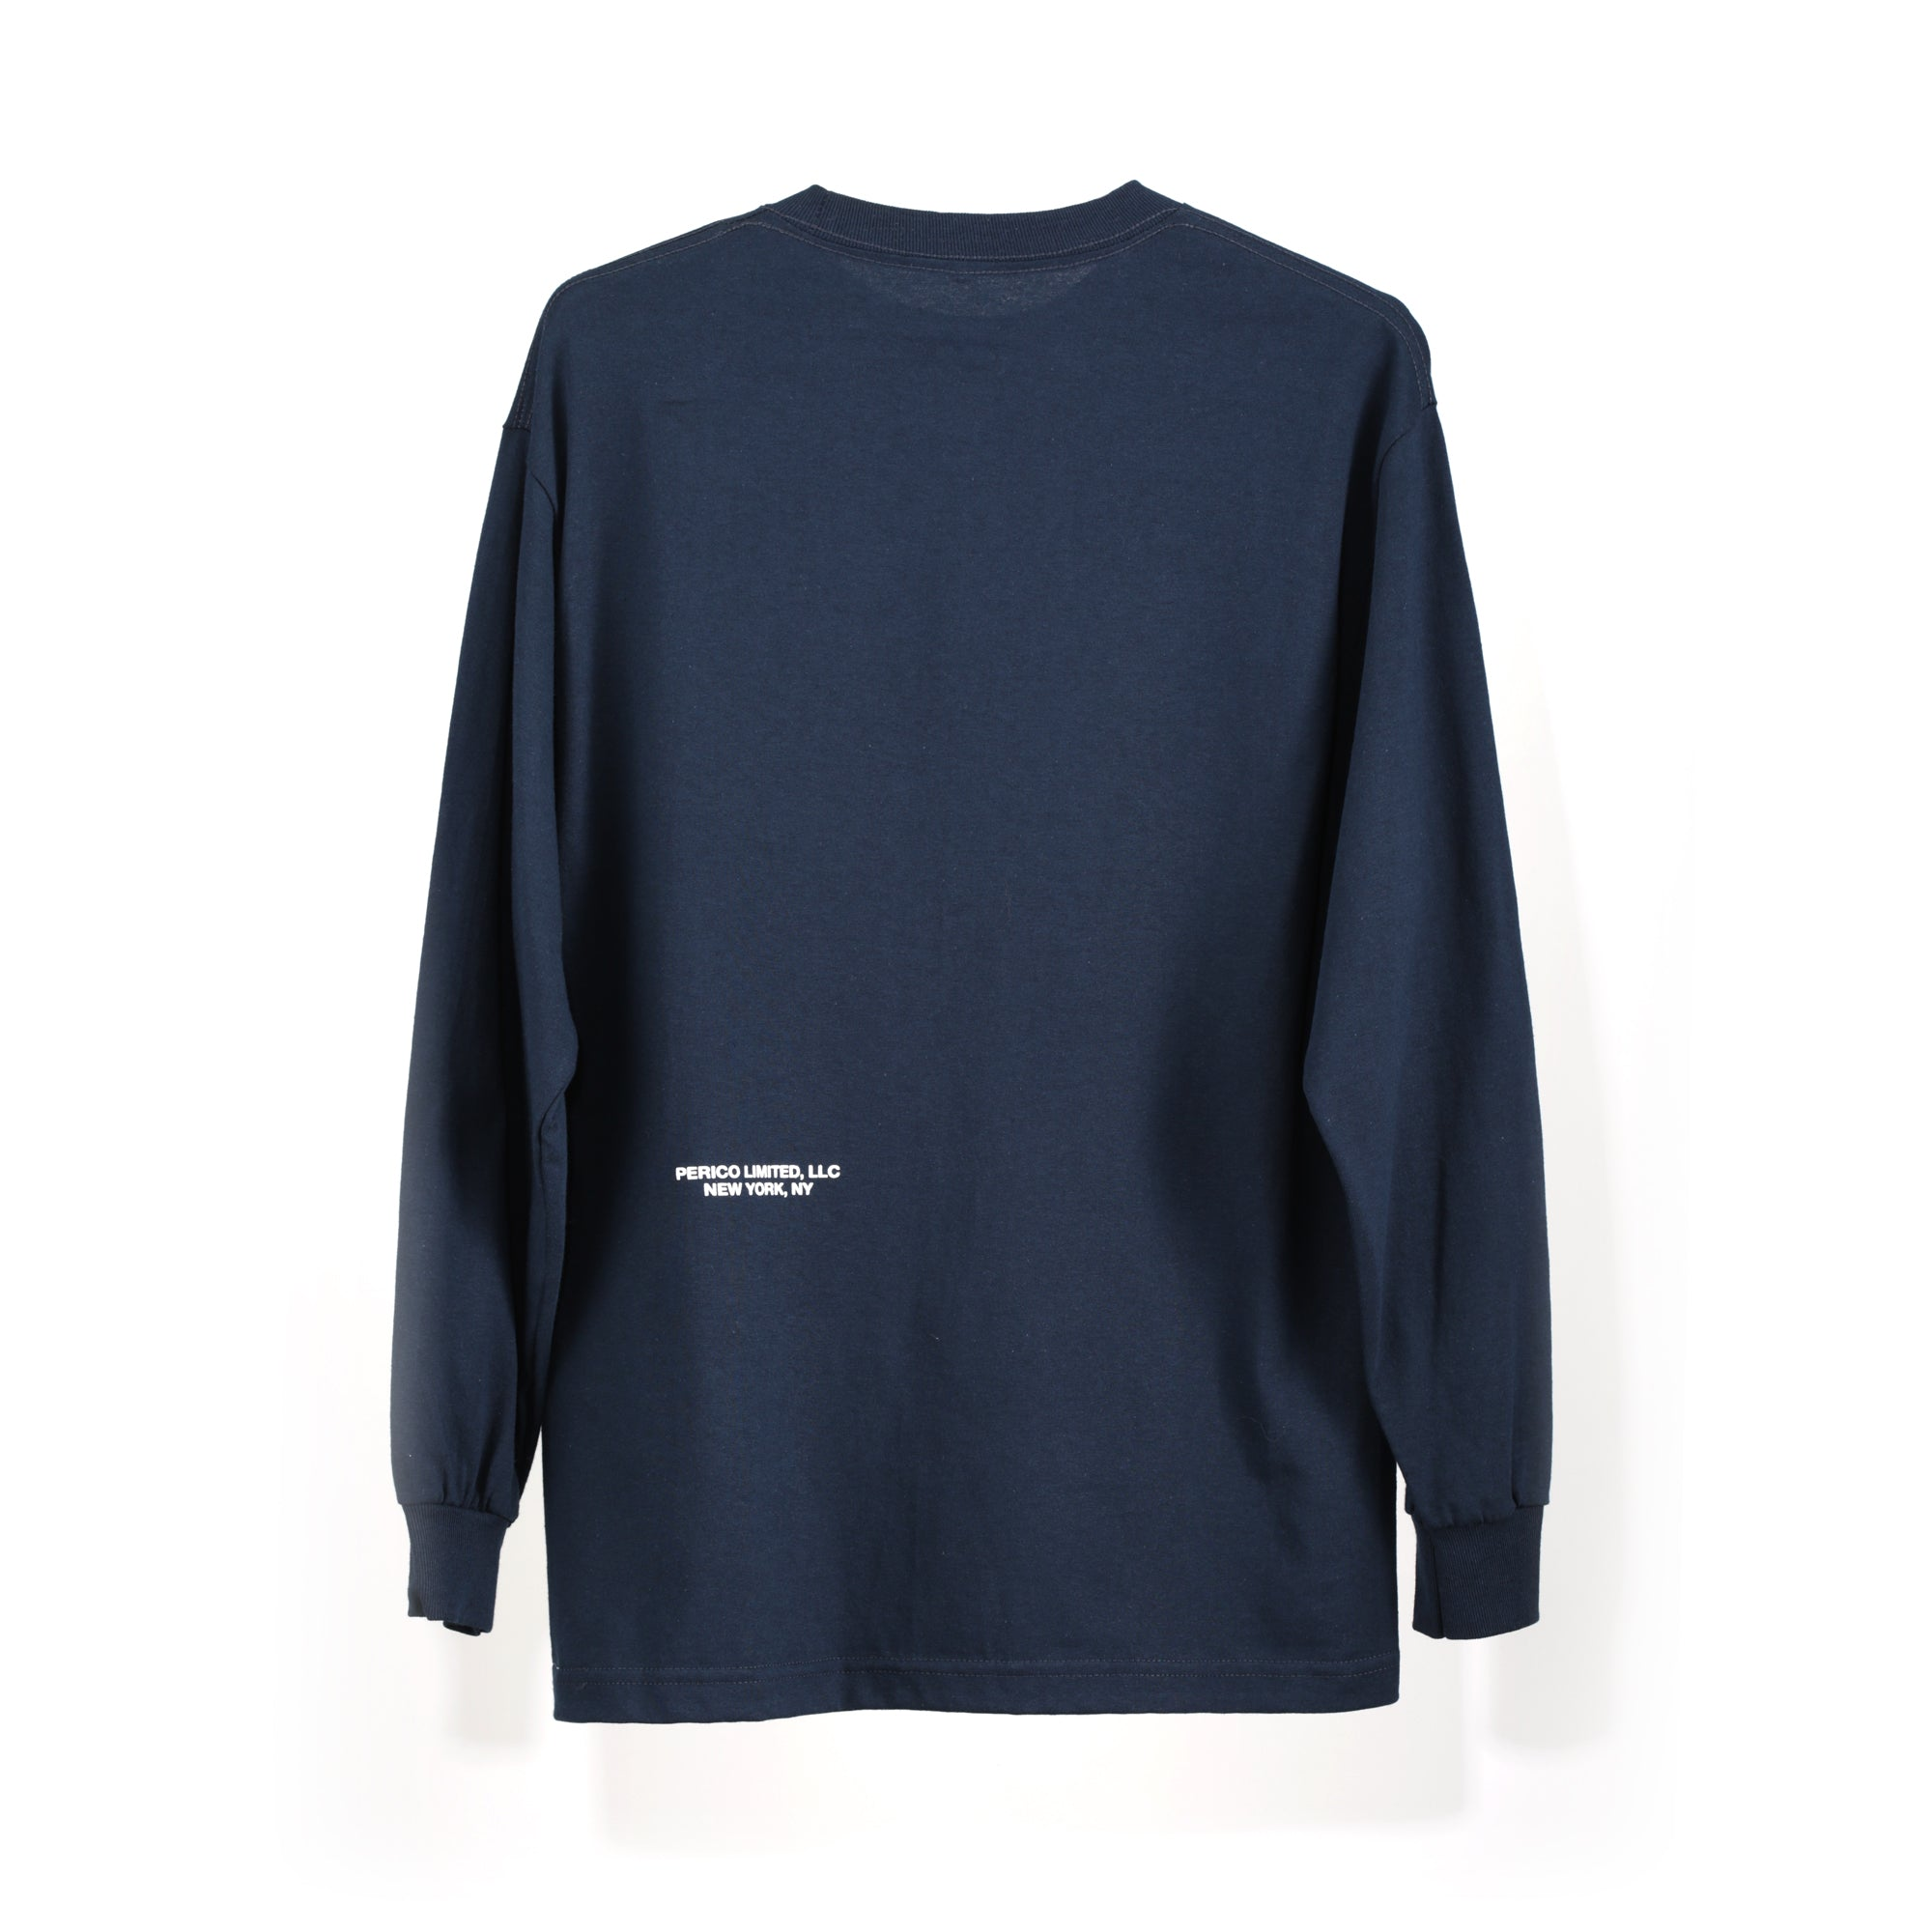 Yerrrr - Home Navy L/S